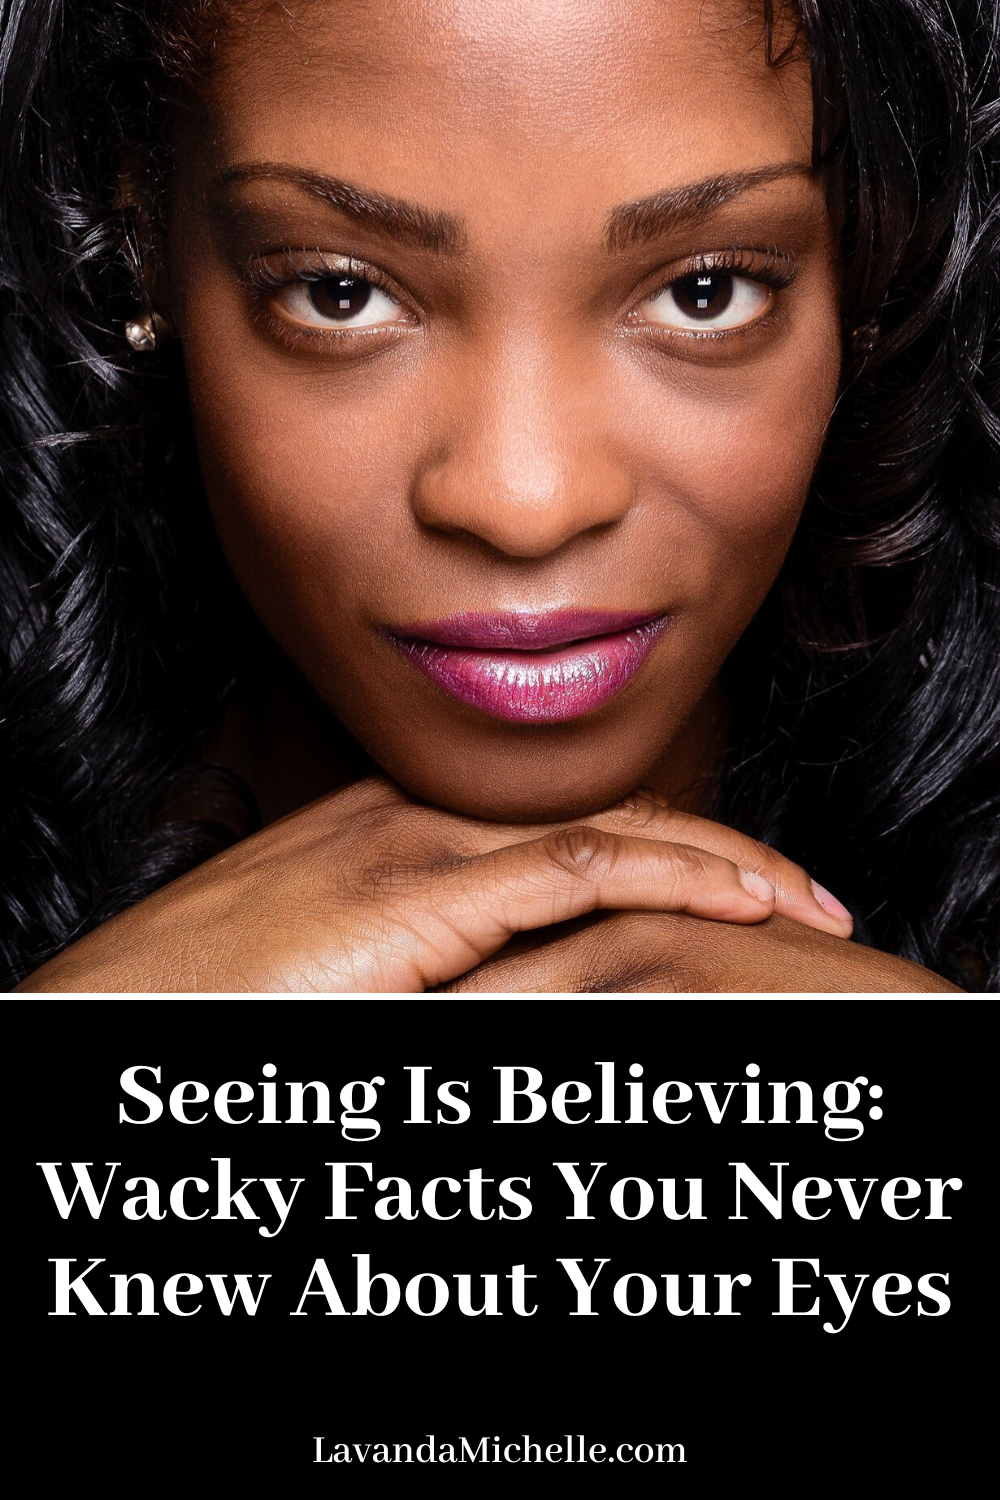 Seeing Is Believing: Wacky Facts You Never Knew About Your Eyes